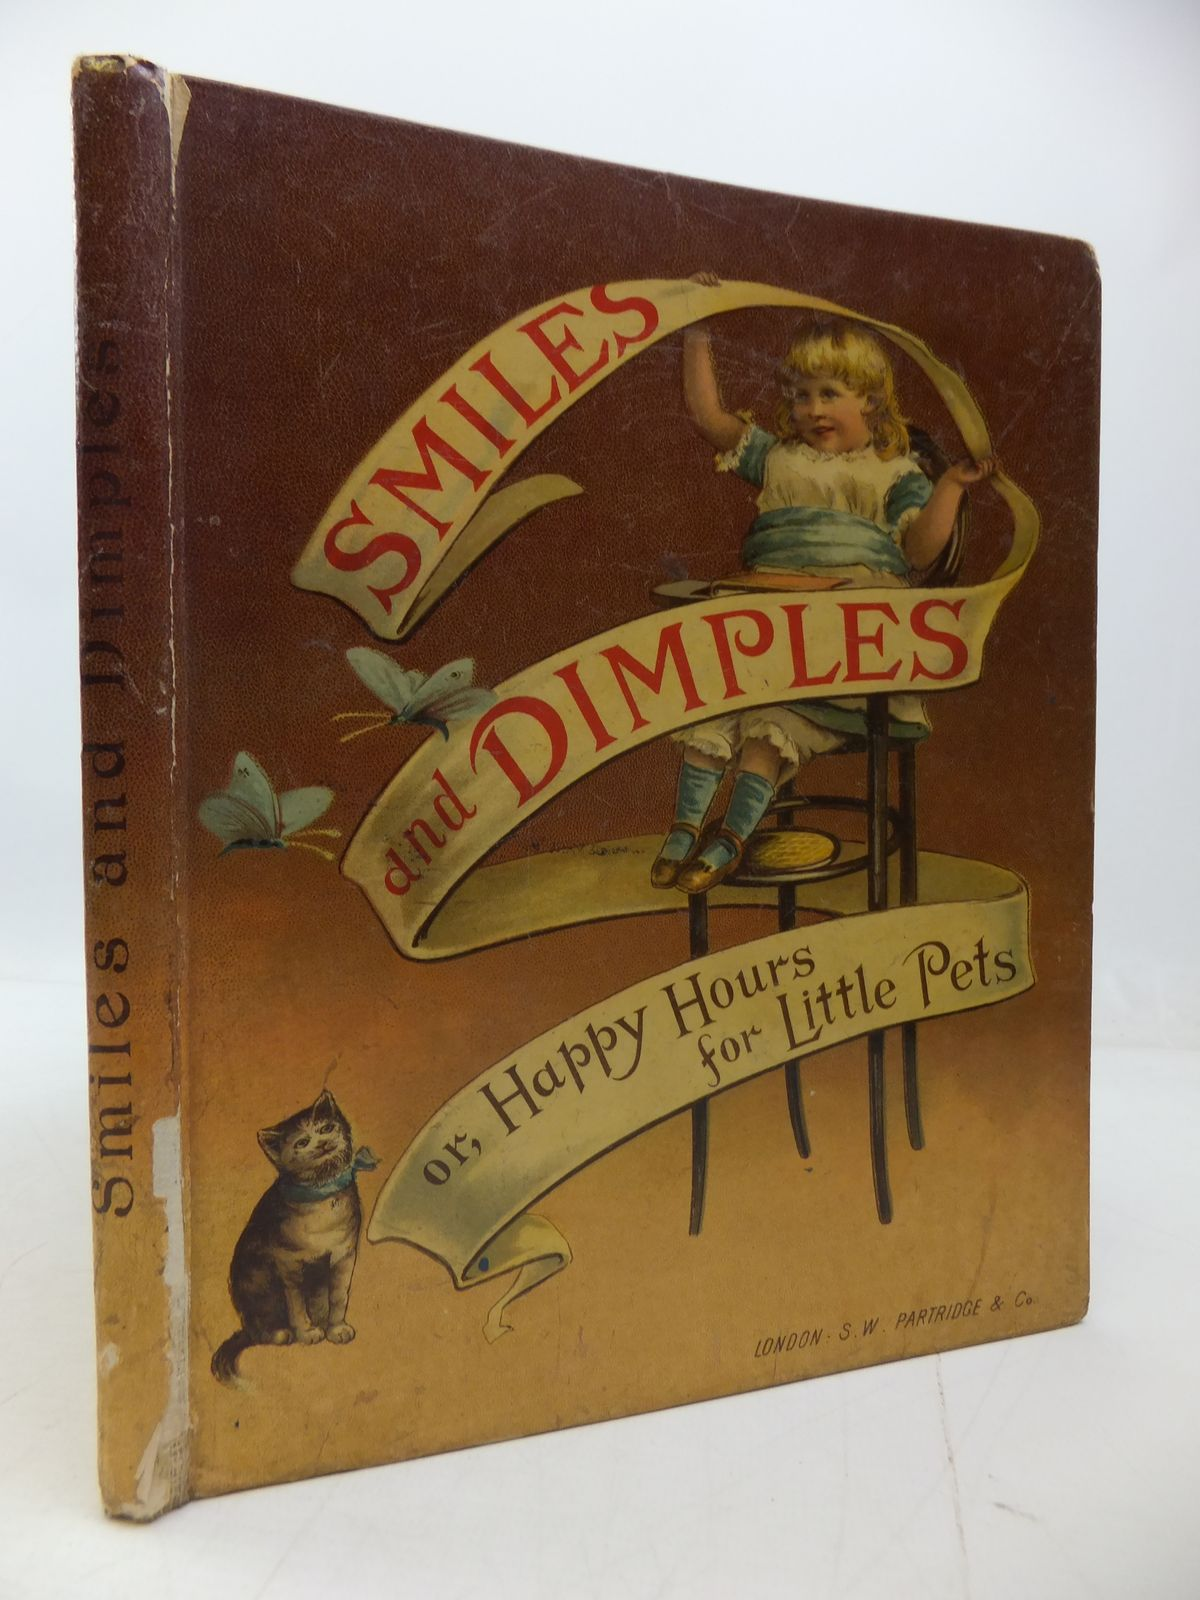 Photo of SMILES AND DIMPLES: HAPPY HOURS FOR LITTLE PETS written by J.D., published by S.W. Partridge & Co. (STOCK CODE: 1108838)  for sale by Stella & Rose's Books